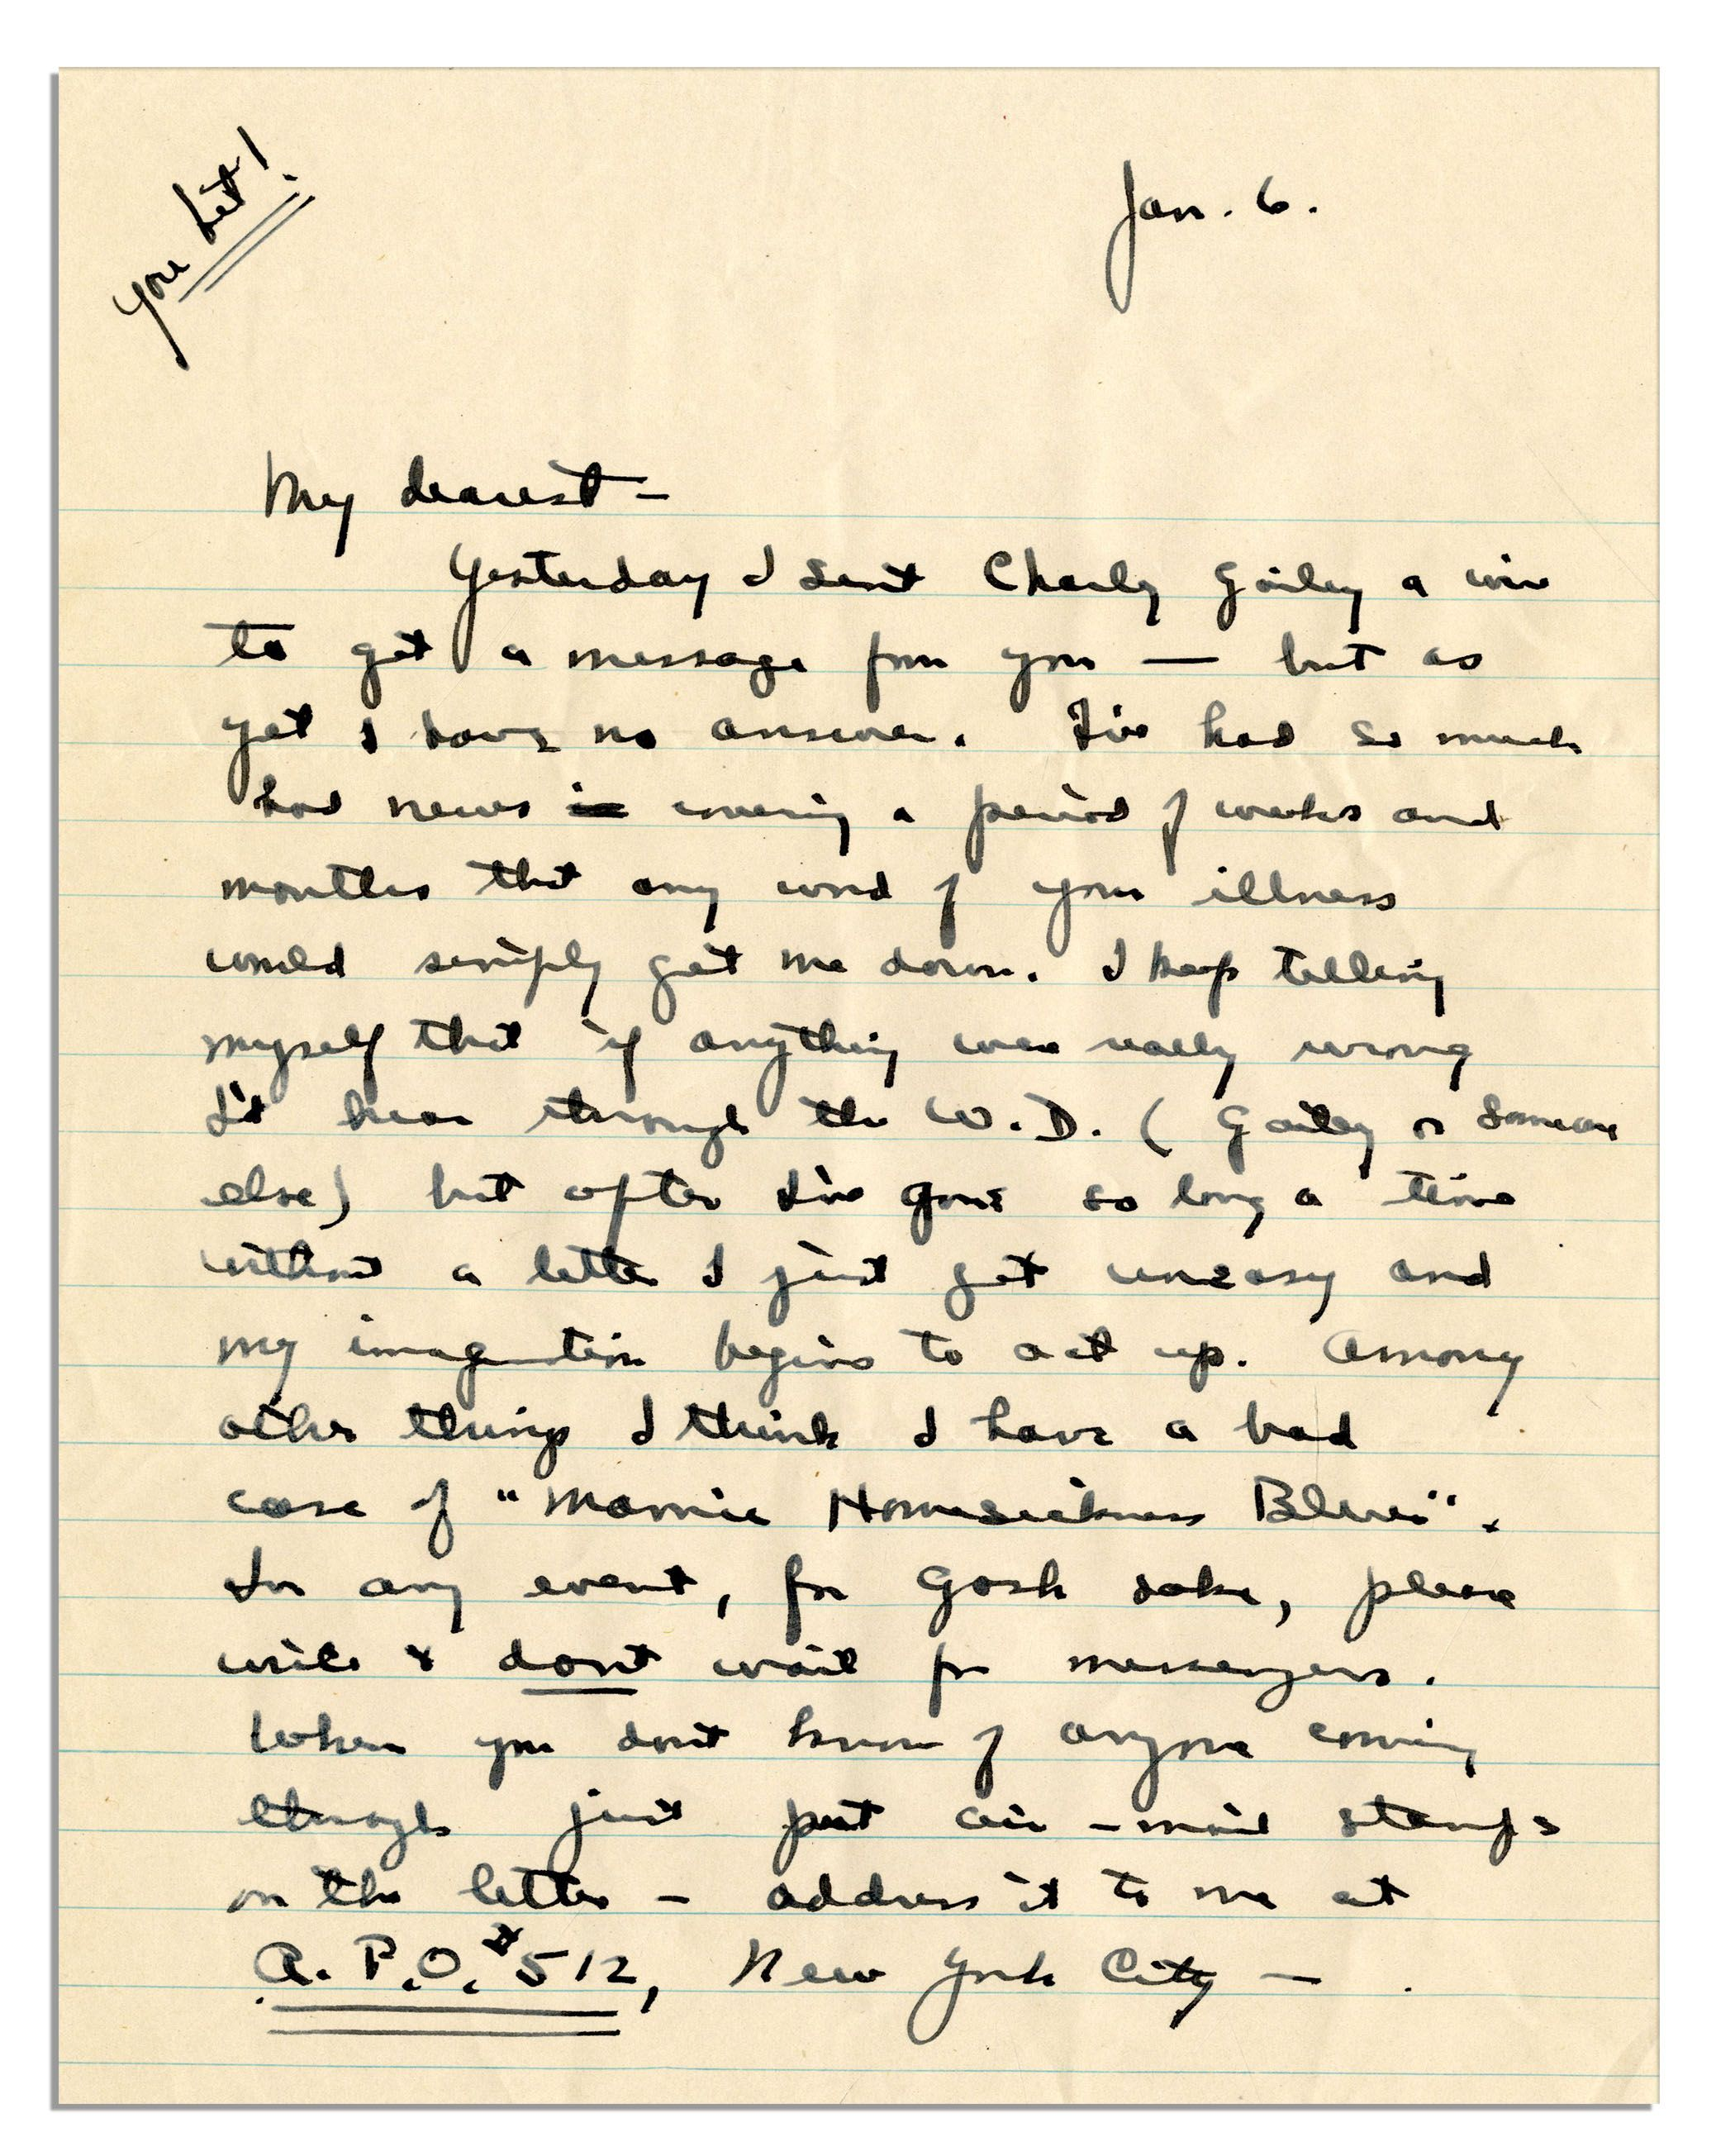 i love dwight eisenhower wwii letter to his wife